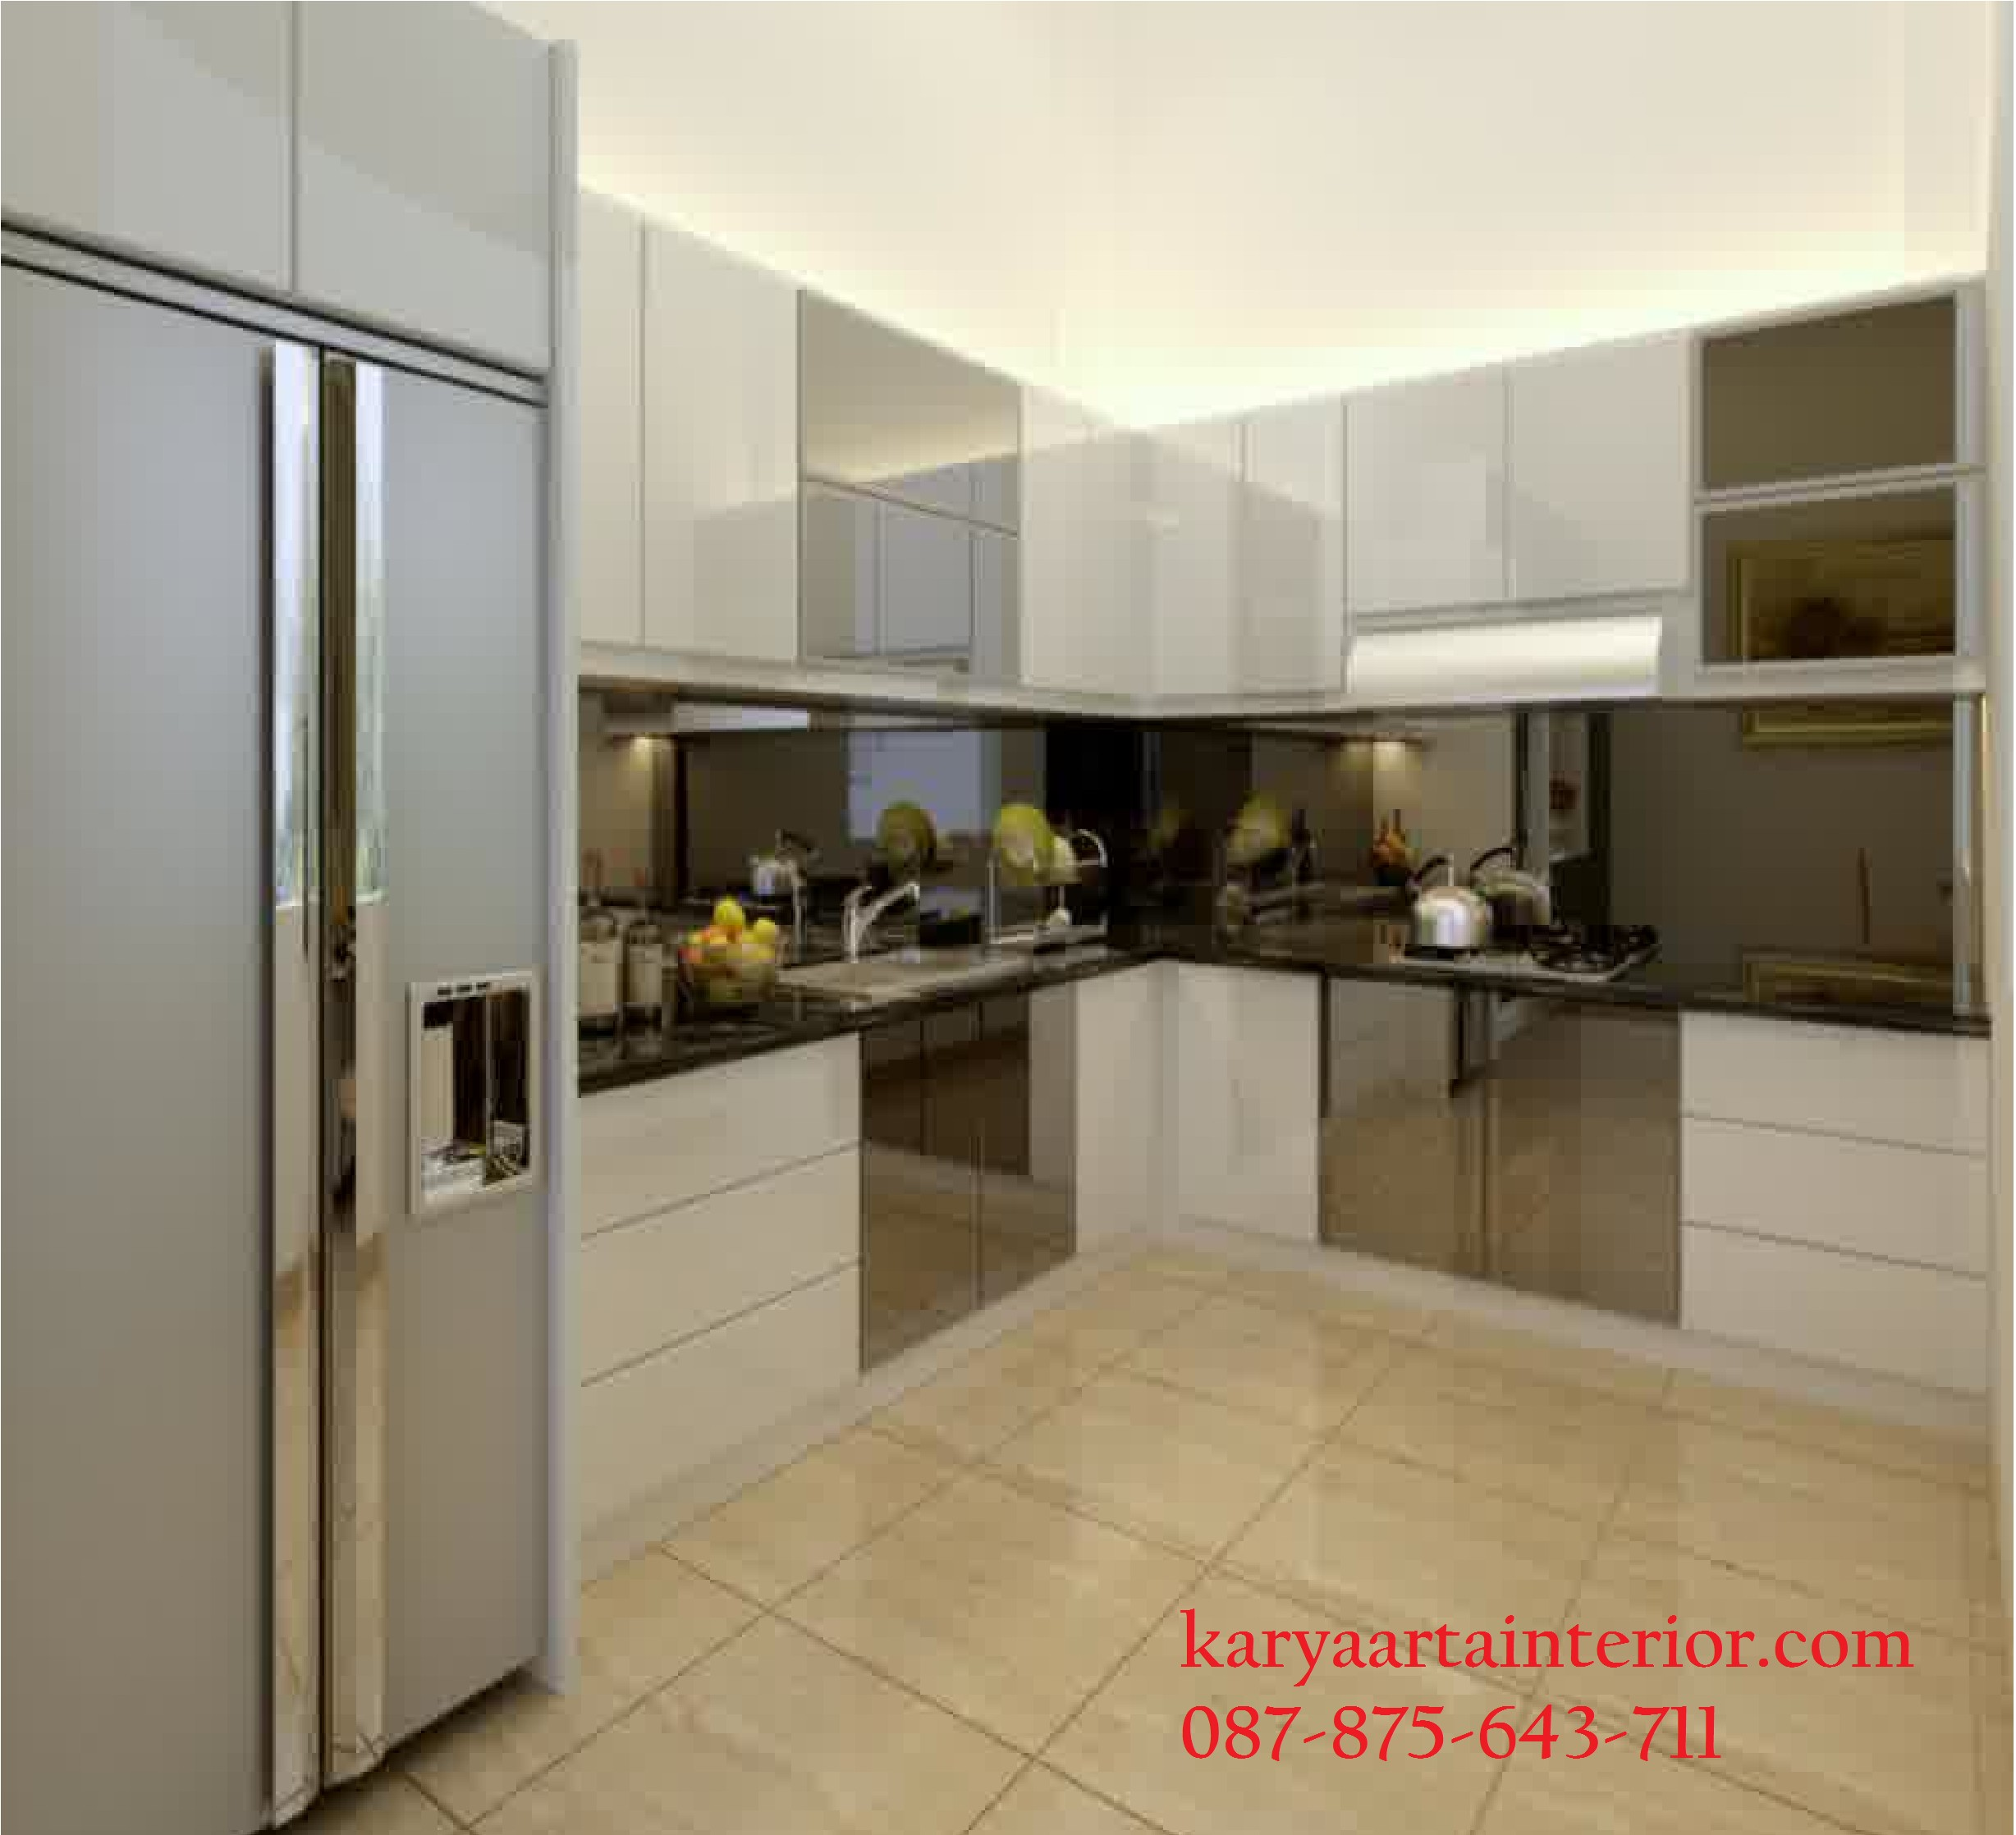 Kitchen Set Hpl Mewah Karya Arta Interior